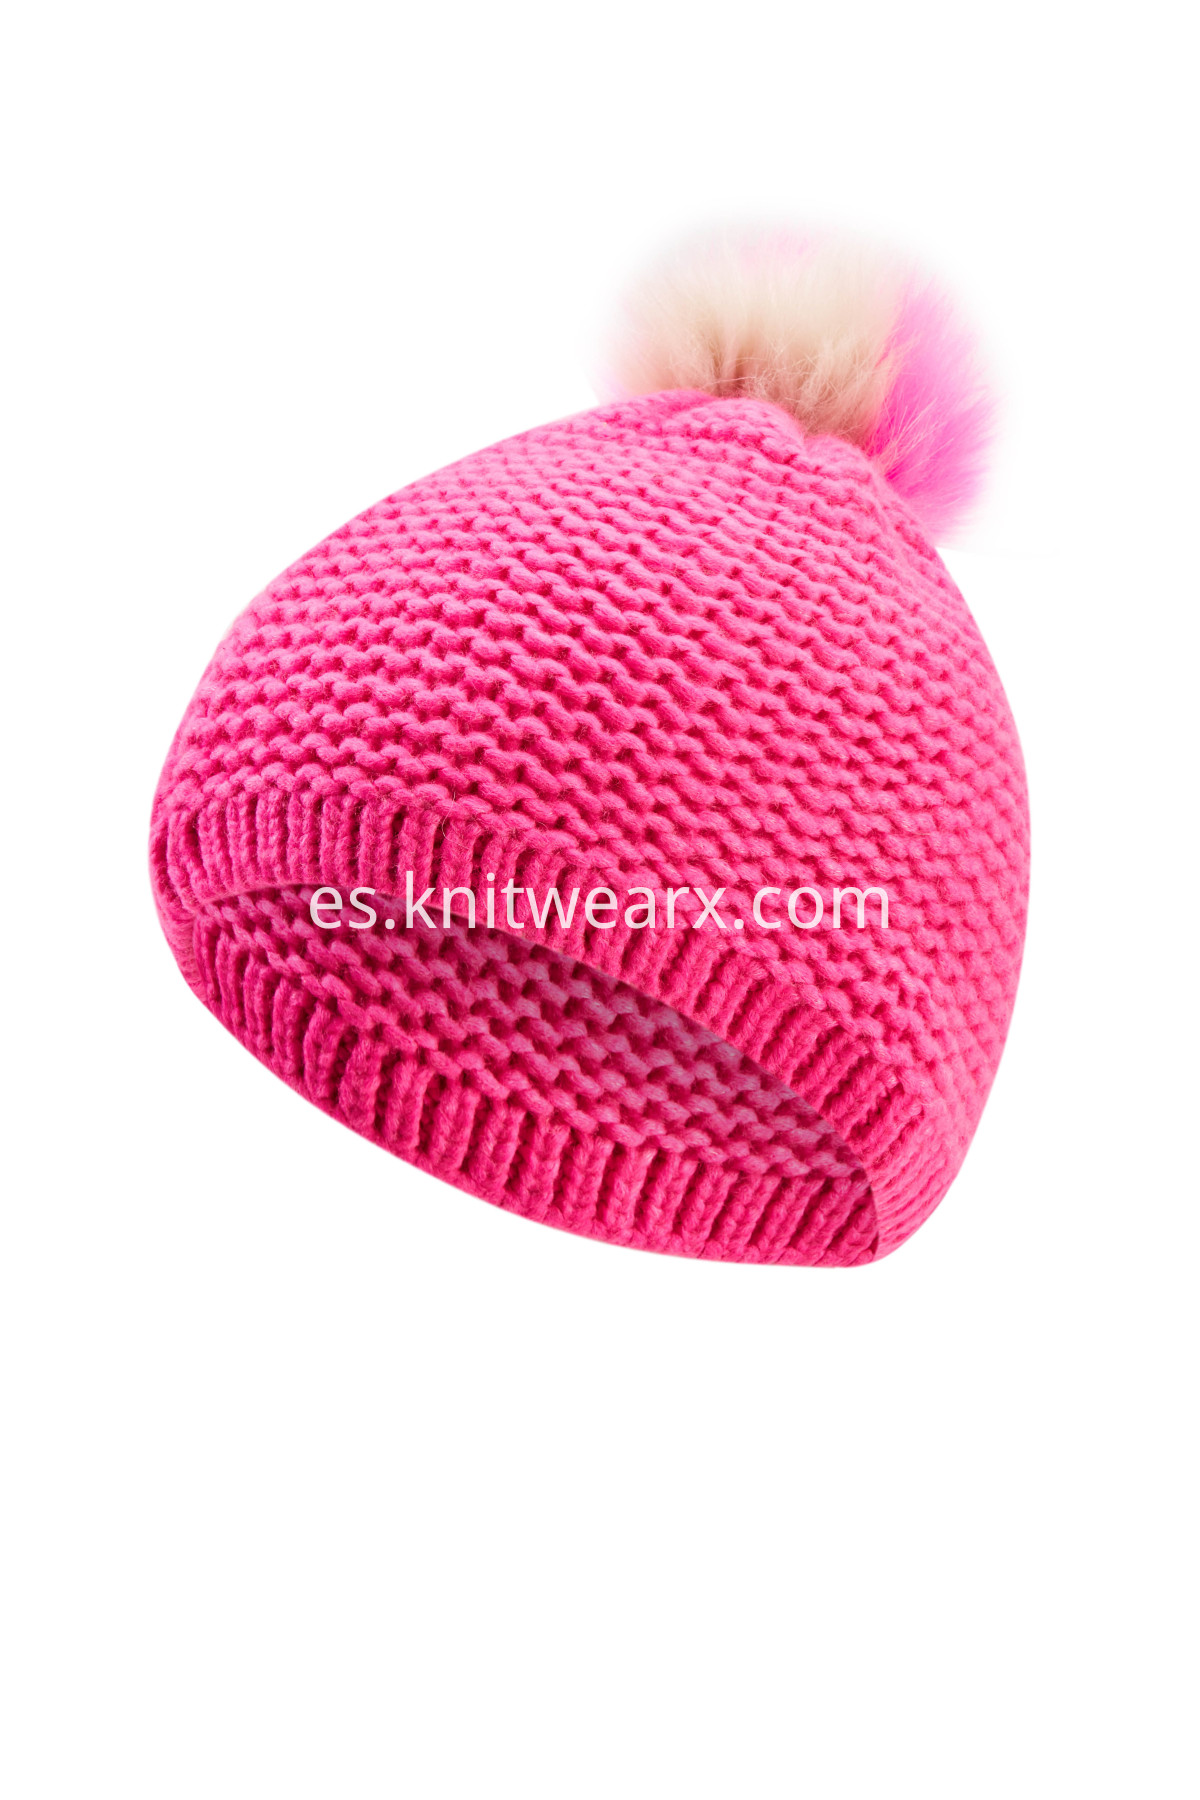 Girls' Beautiful Beanie Child Winter Knit Cap